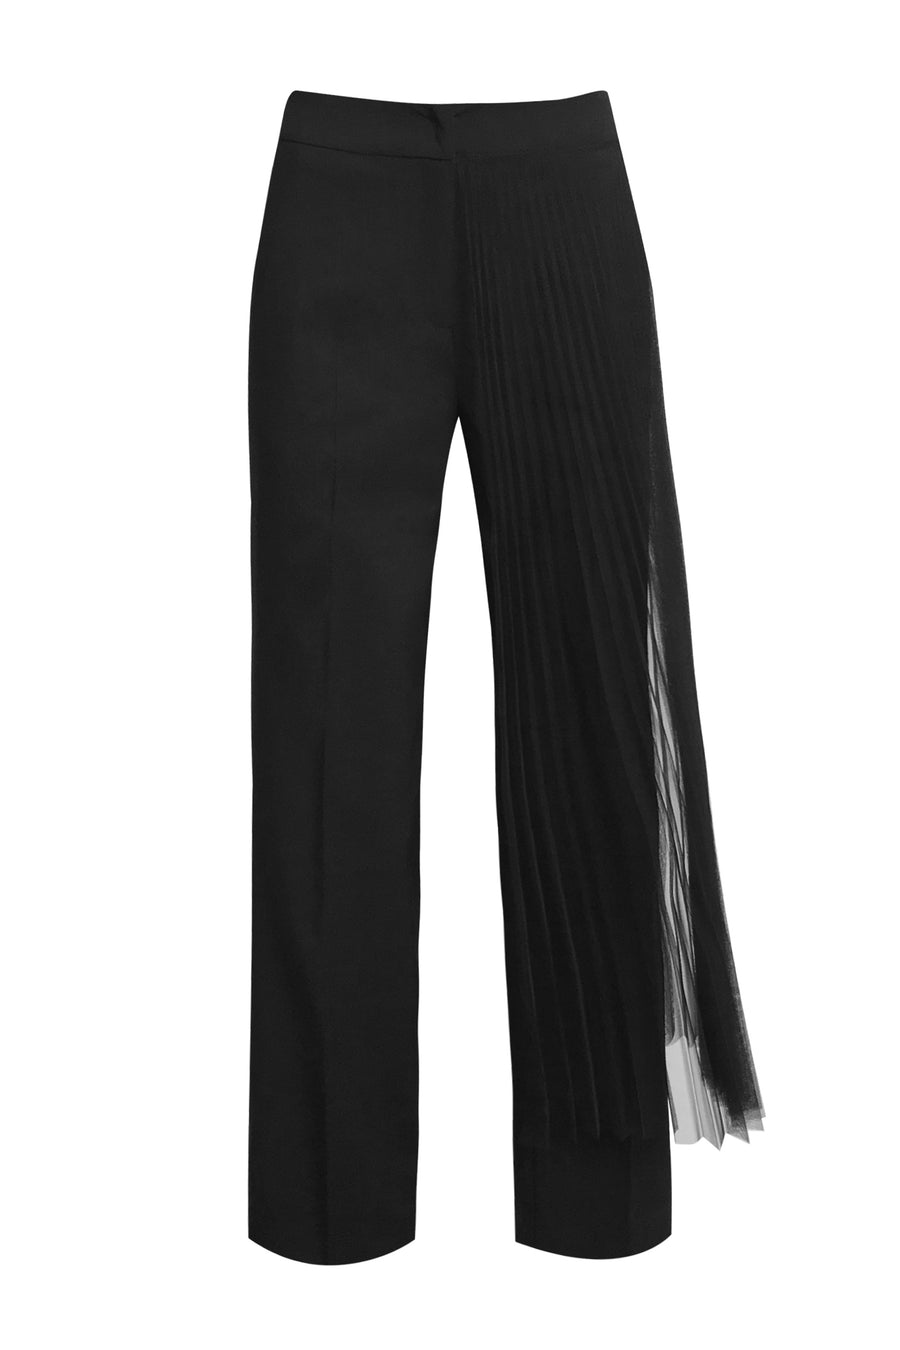 Pants with Plisse in Black